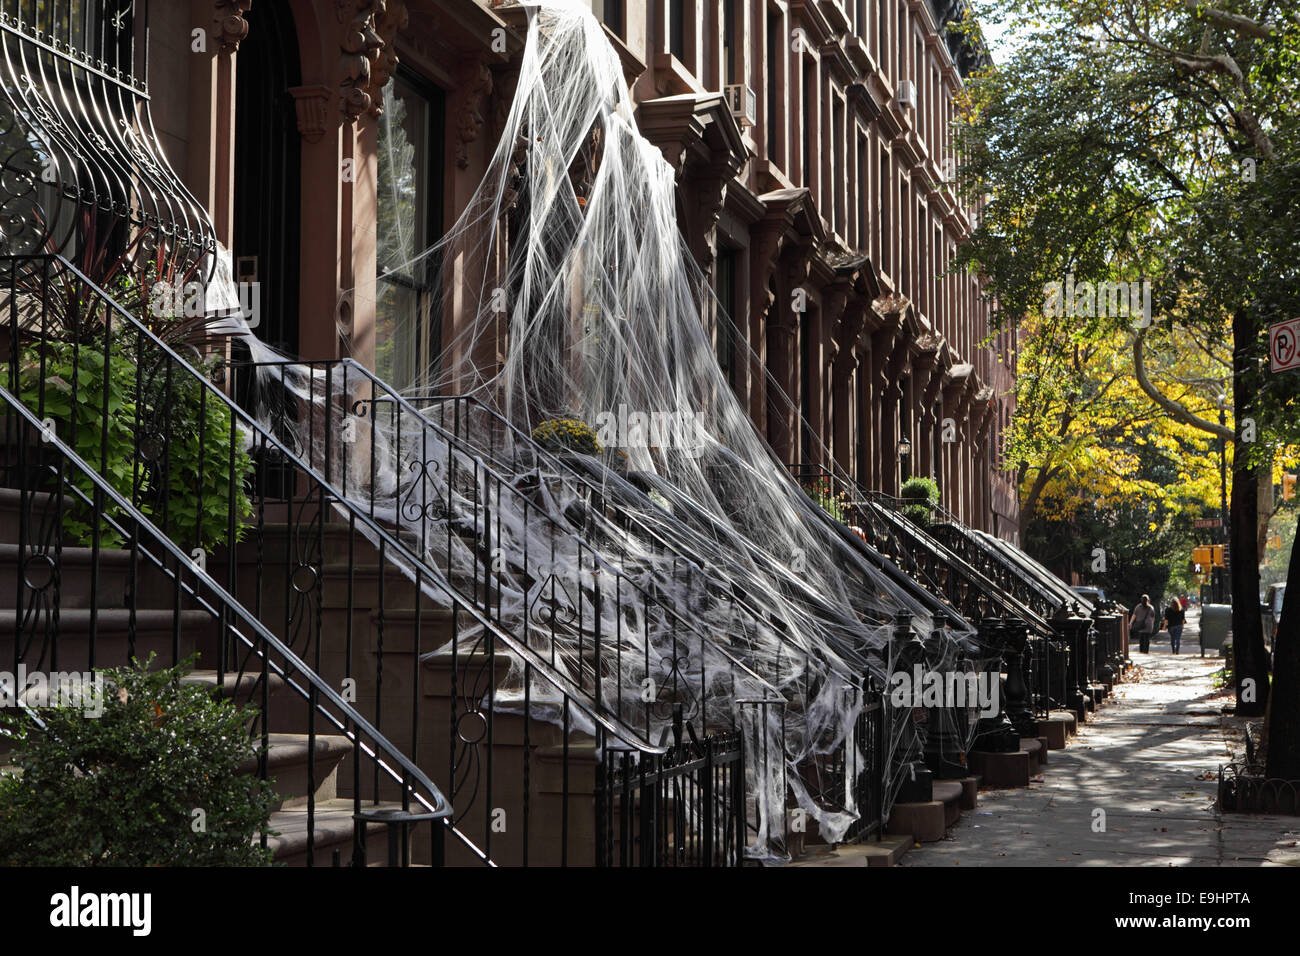 brooklyn brownstone townhouses in carroll gardens draped in spiderweb halloween decoration - Halloween Decorations Spider Web